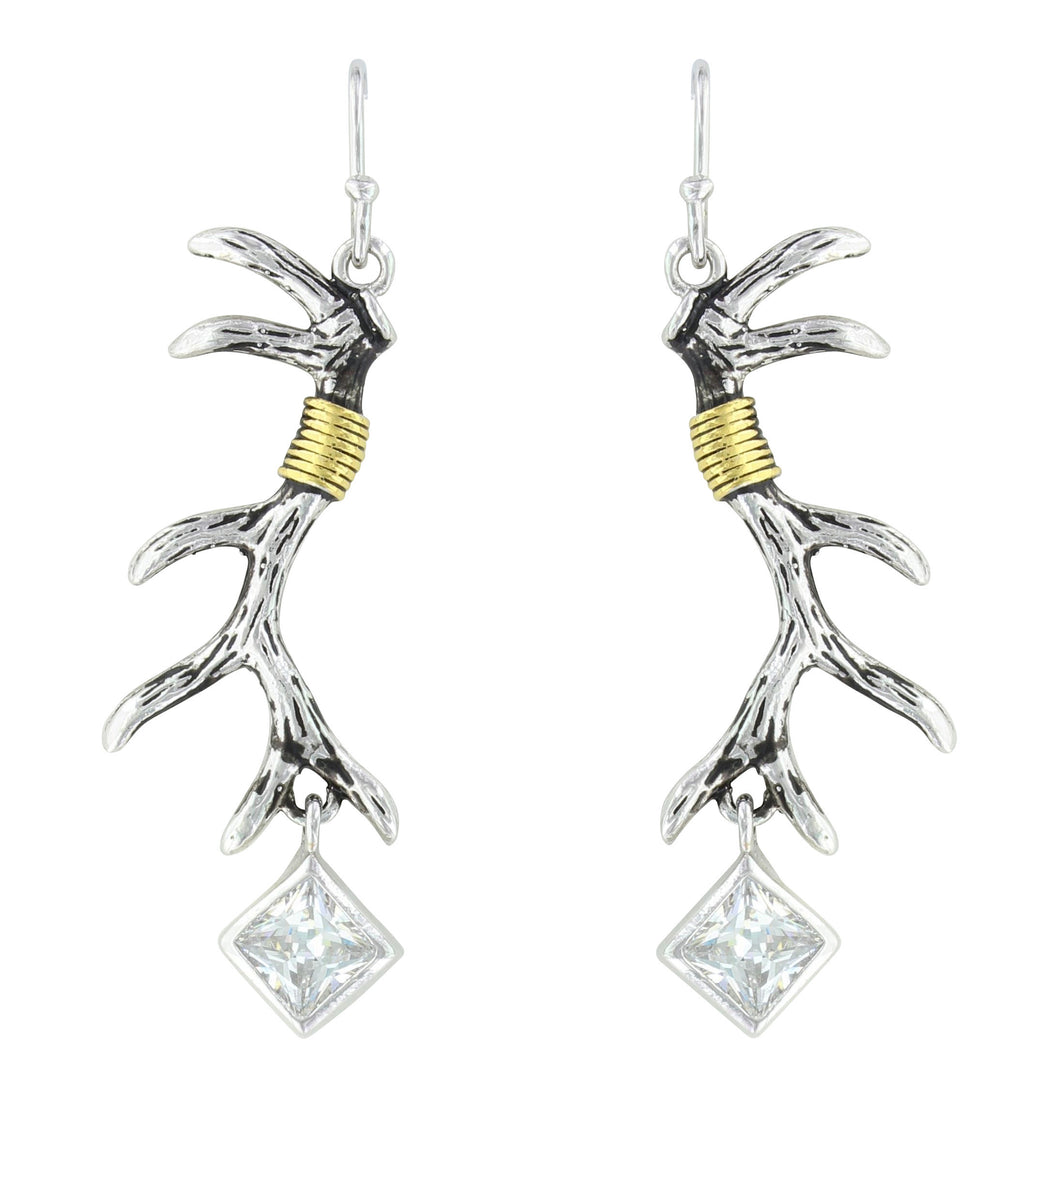 Antlers Found Festoon Earrings